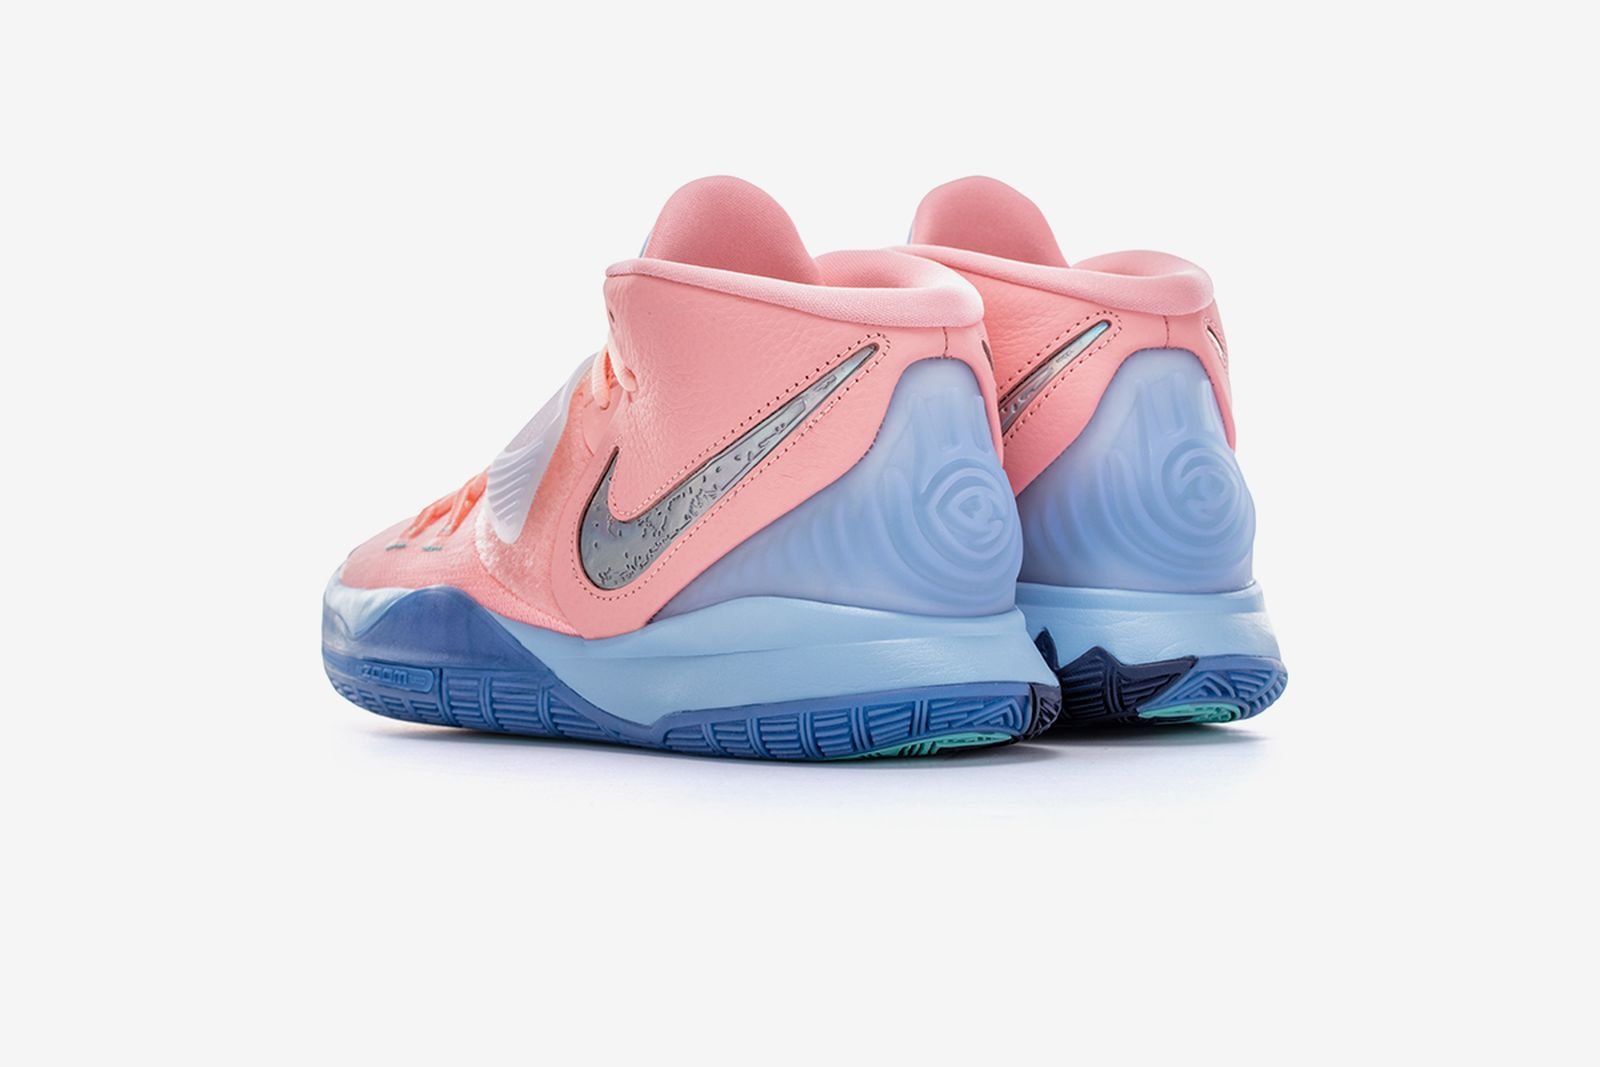 concepts-nike-kyrie-6-release-date-price-25